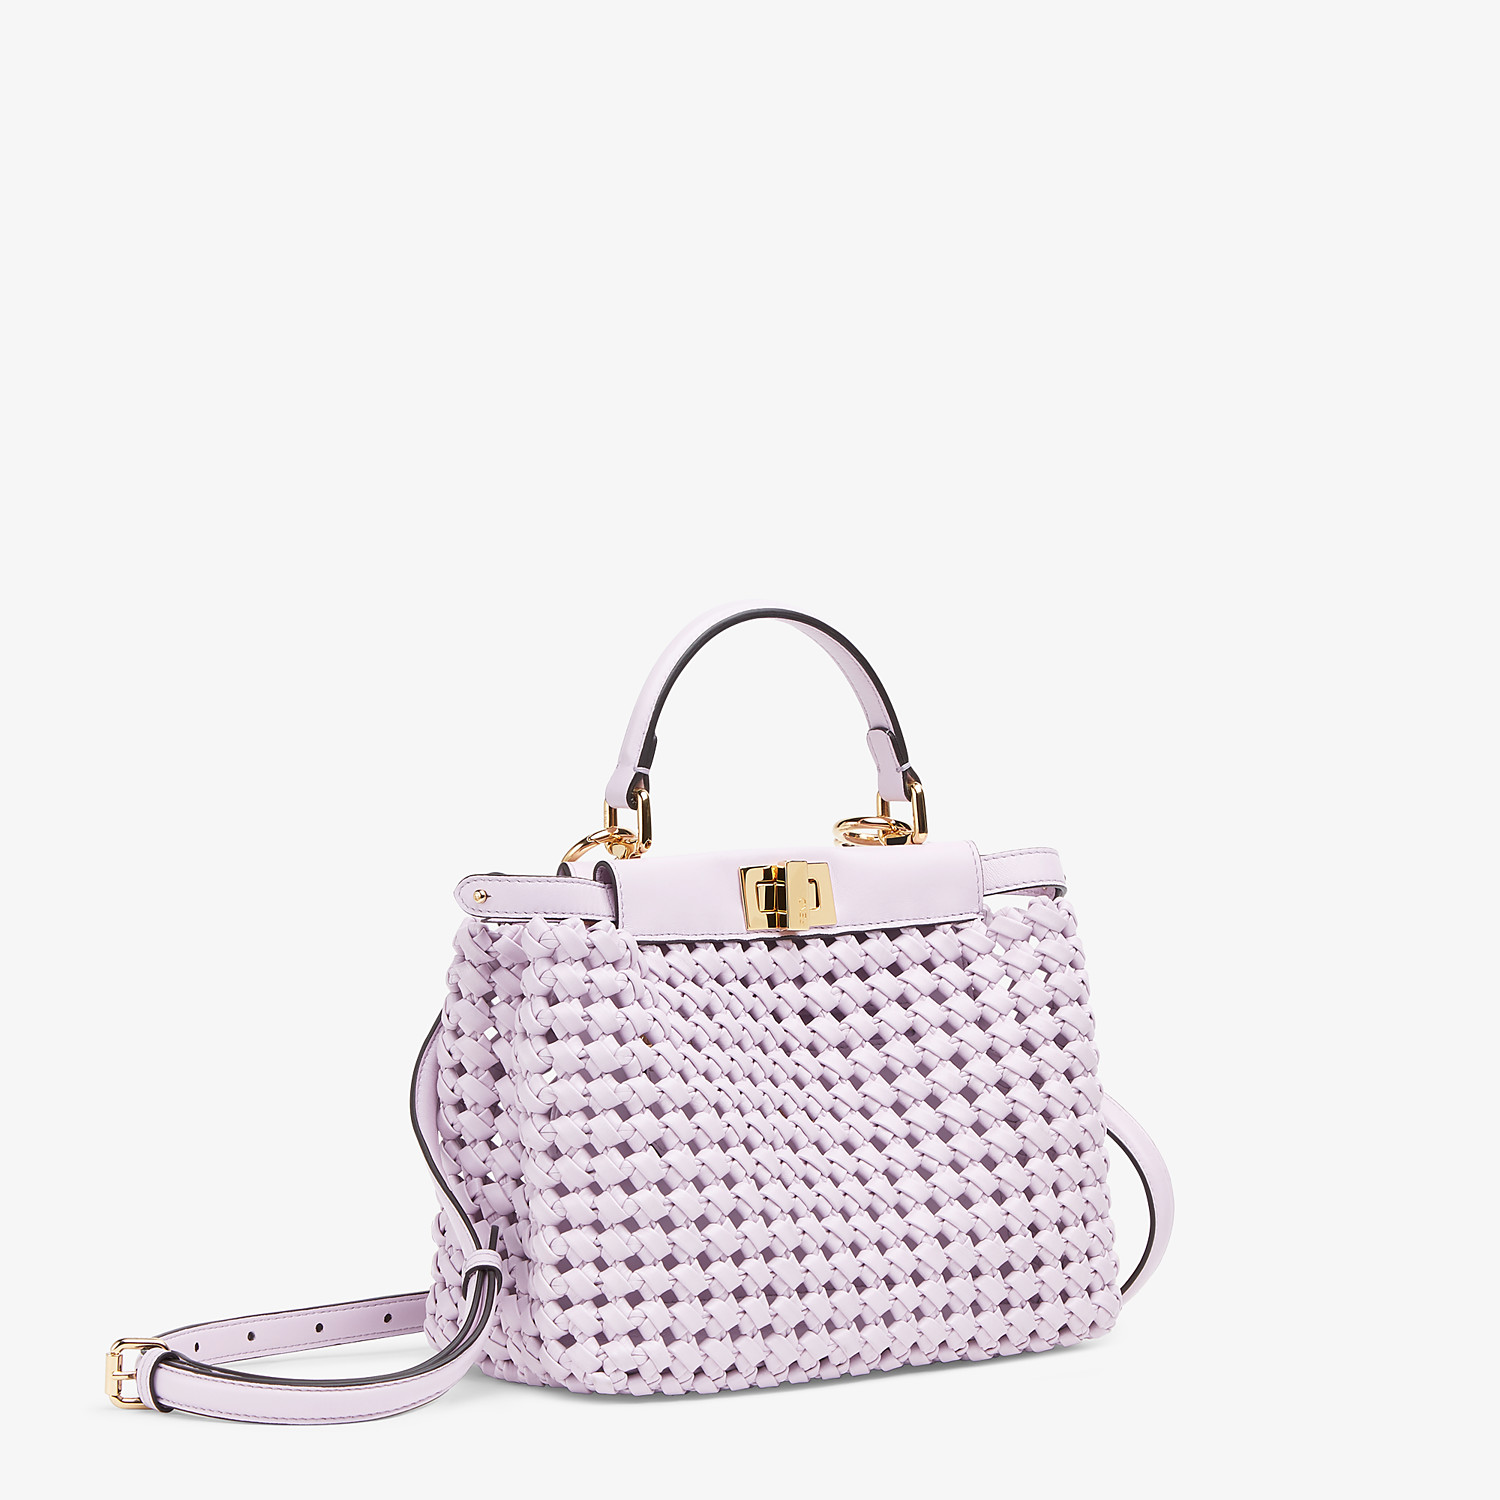 FENDI PEEKABOO ICONIC MINI - Lilac leather interlace bag - view 3 detail